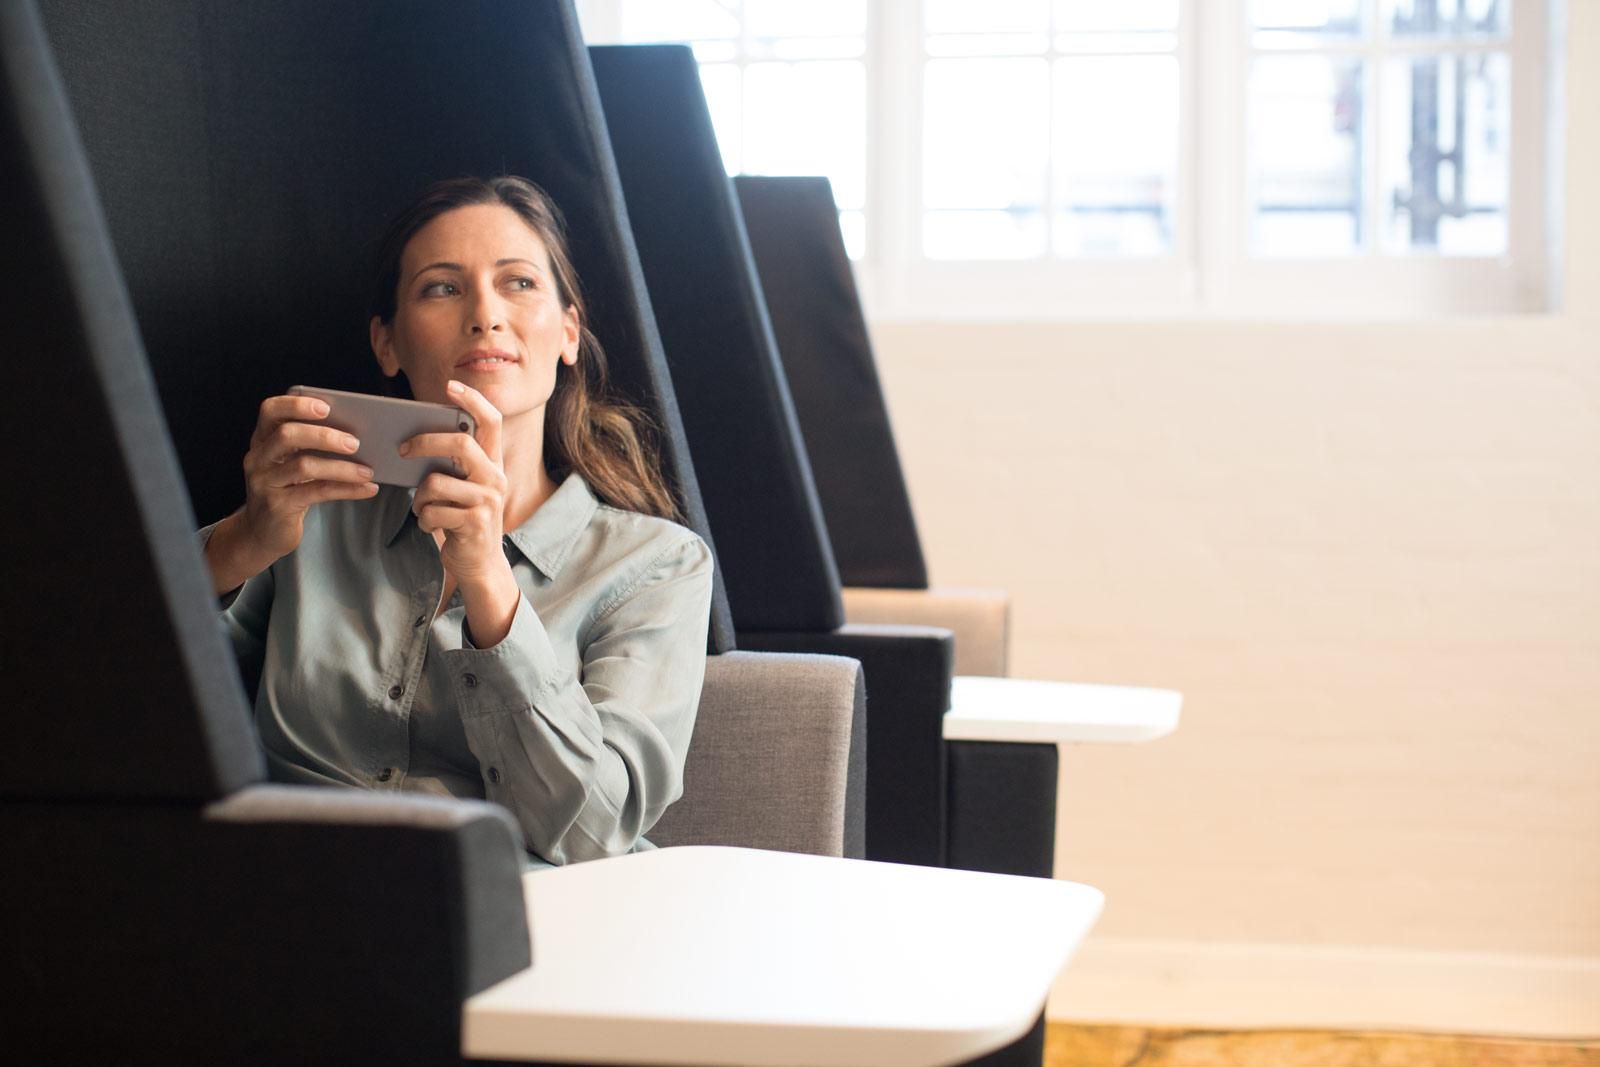 woman-sitting-in-seat-lounge-with-mobile-phone